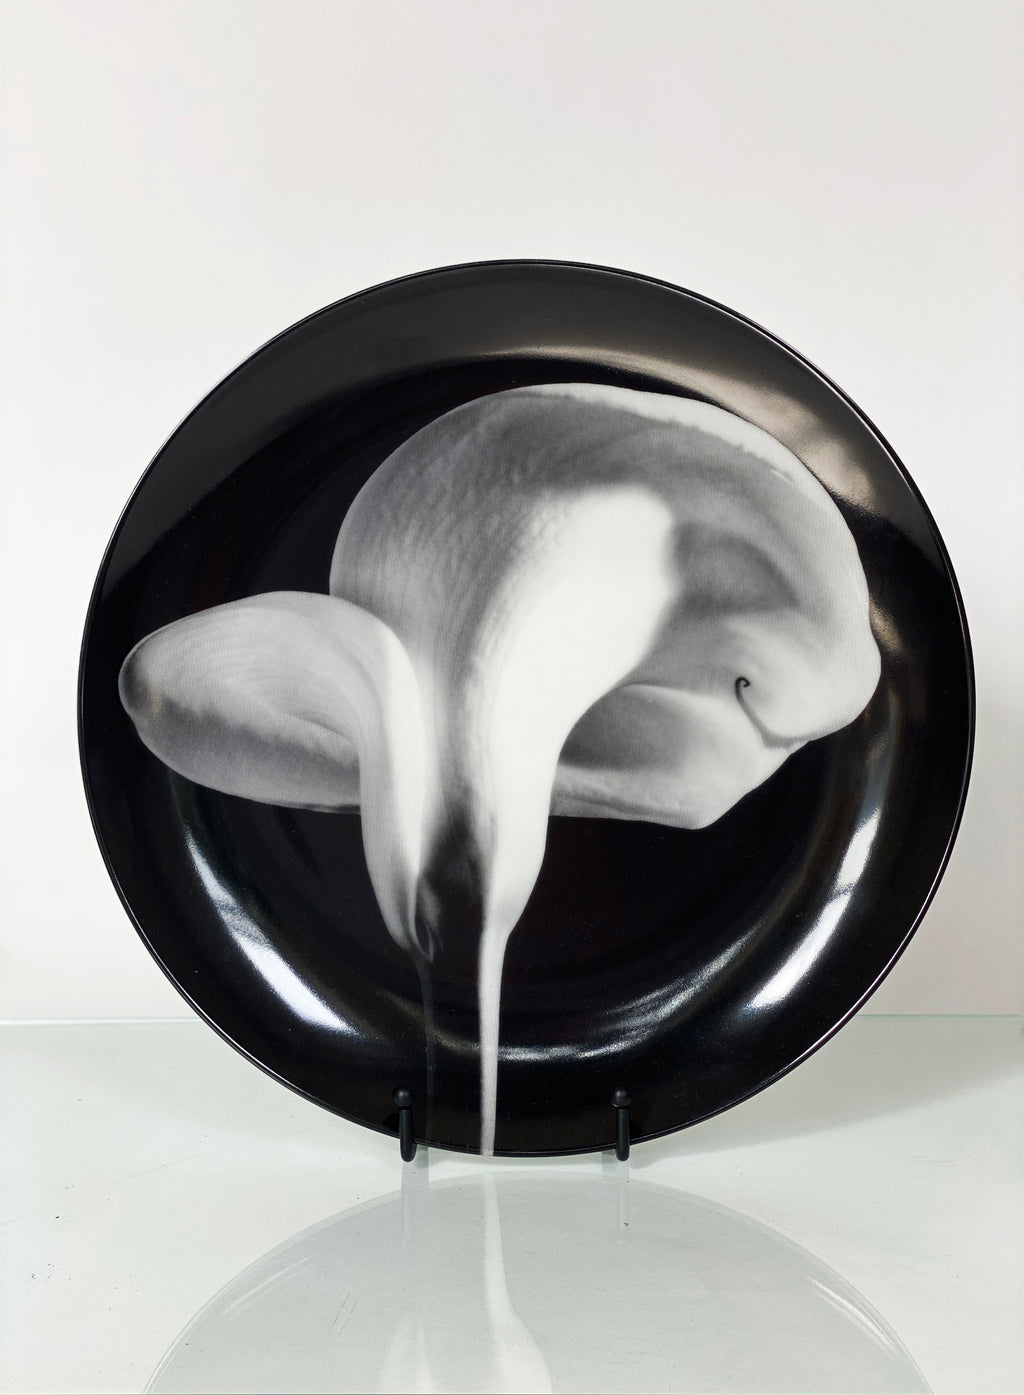 'Calla Lily' by Robert Mapplethorpe